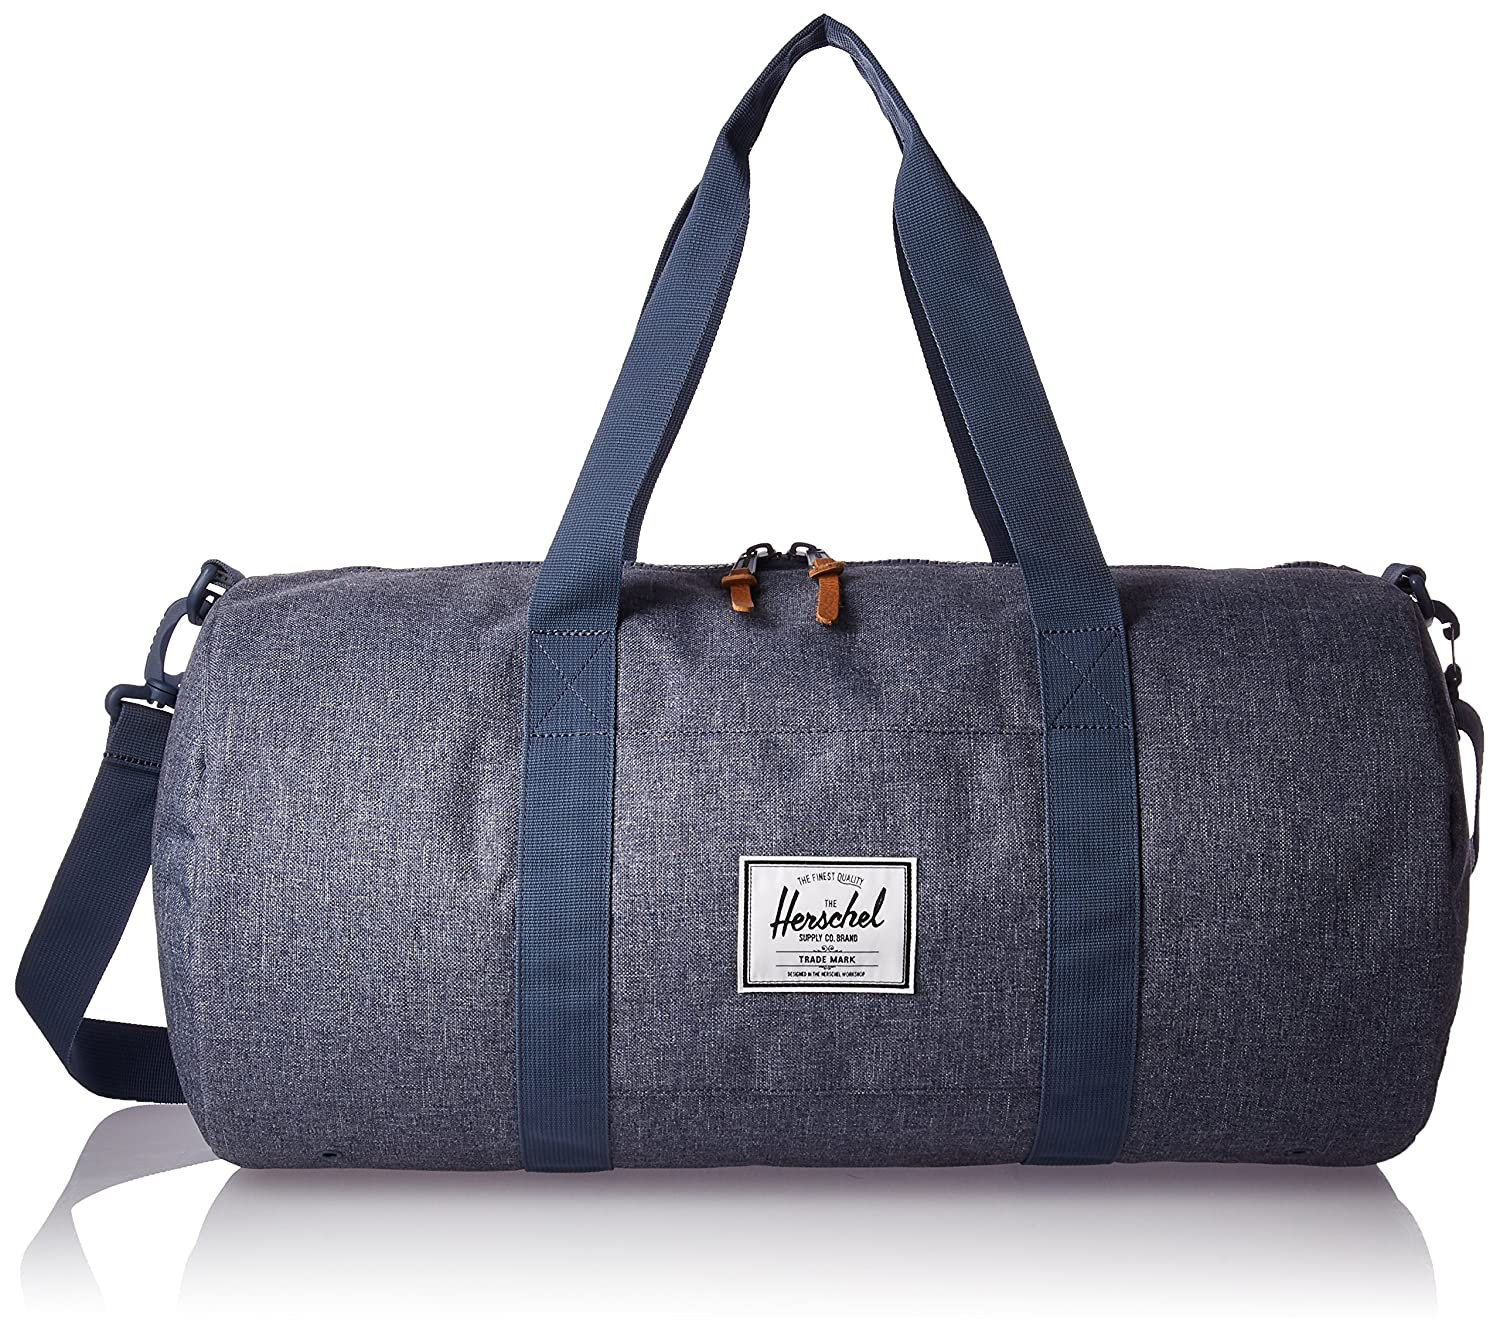 423738521f97 Herschel Sutton Mid Volume 28 Litre Duffle Carry Bag Dark Chambray  Crosshatch  Amazon.co.uk  Sports   Outdoors